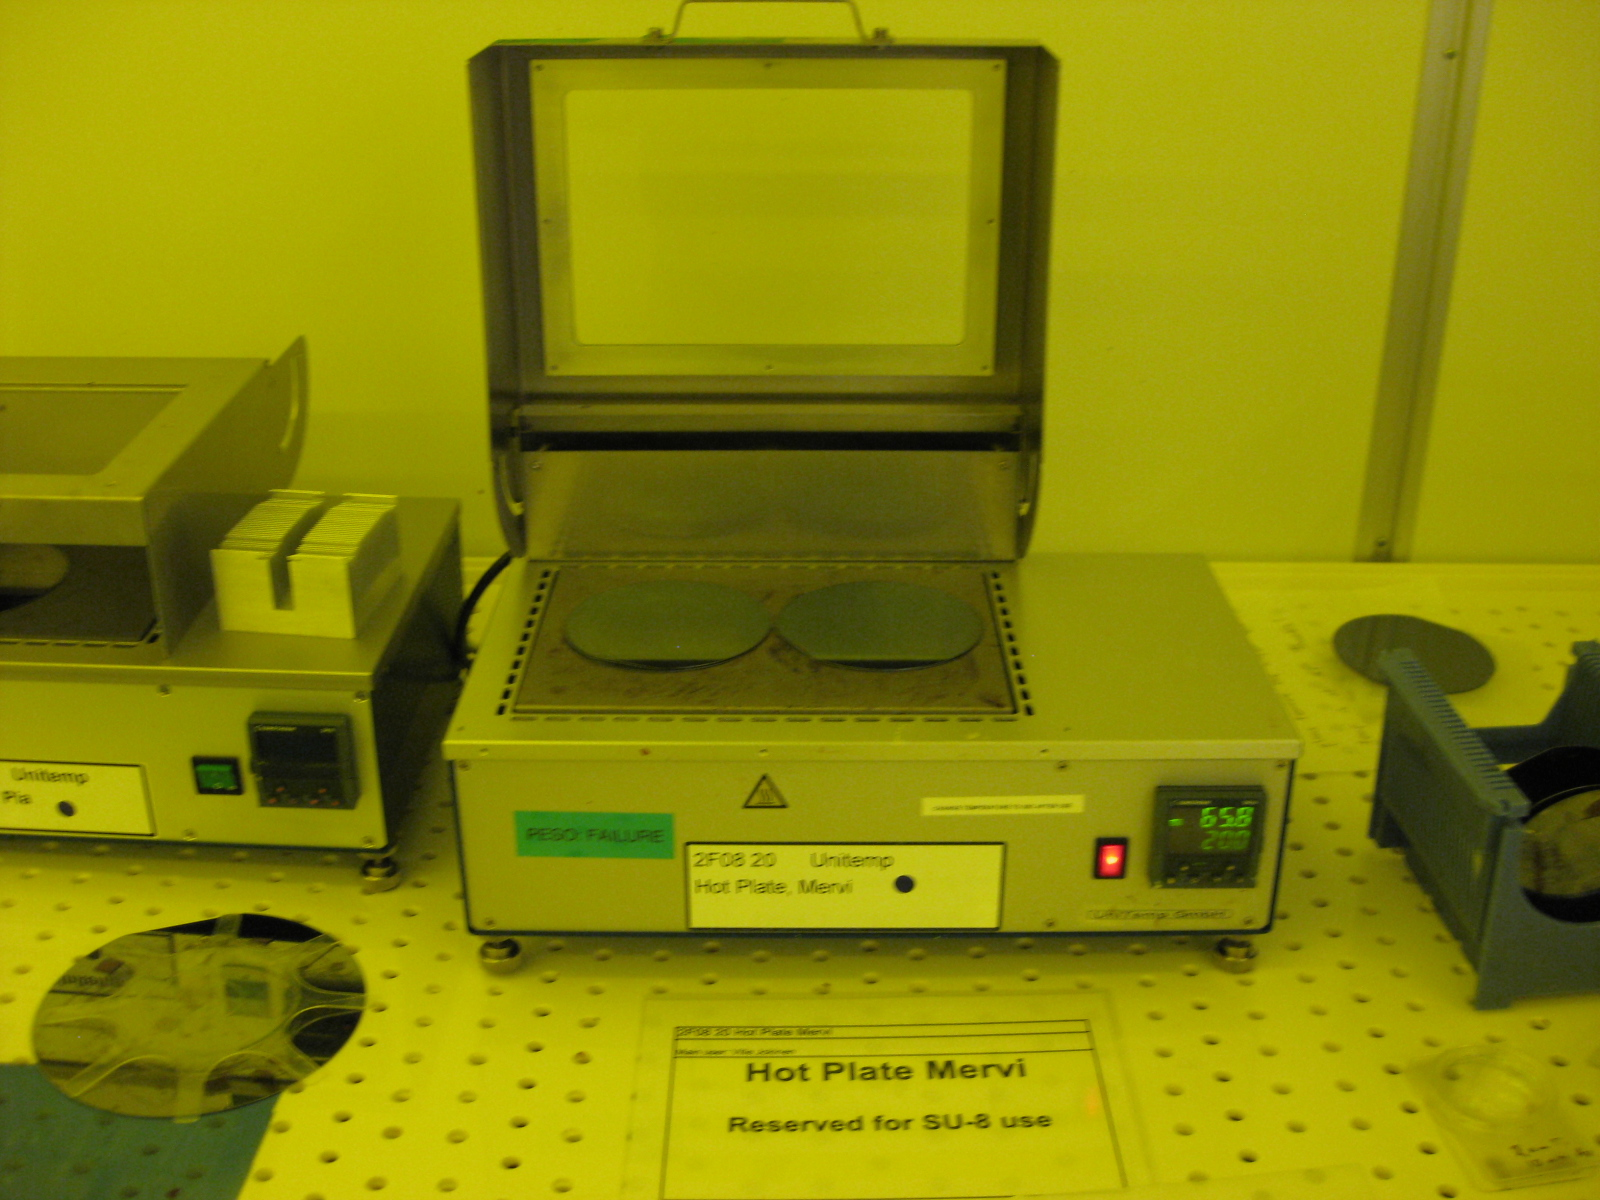 Picture of Hot Plate Mervi